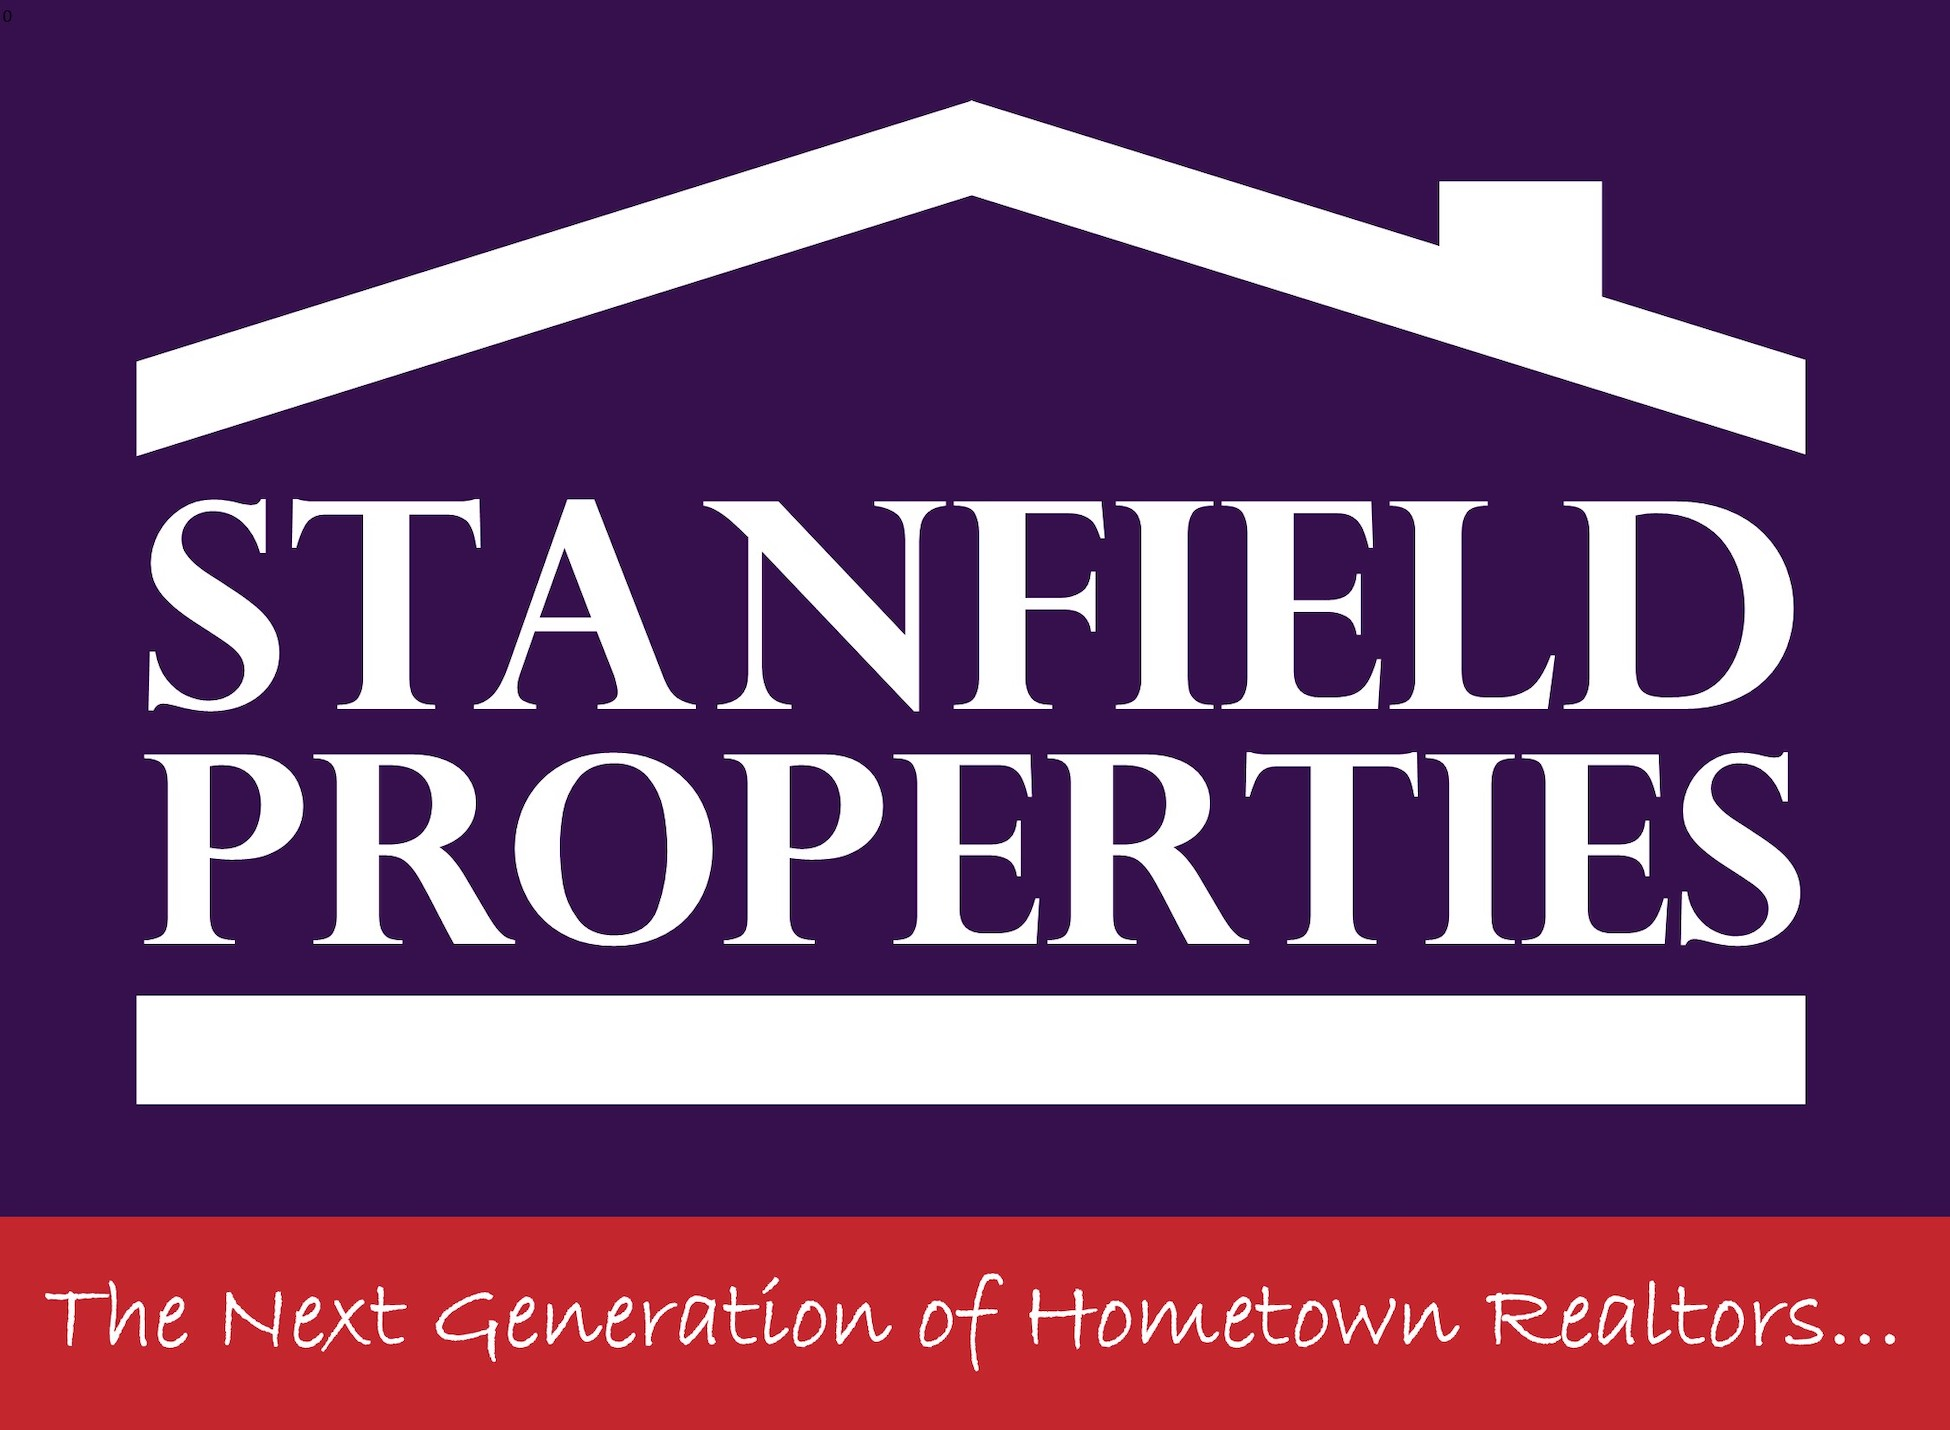 Stanfield Properties